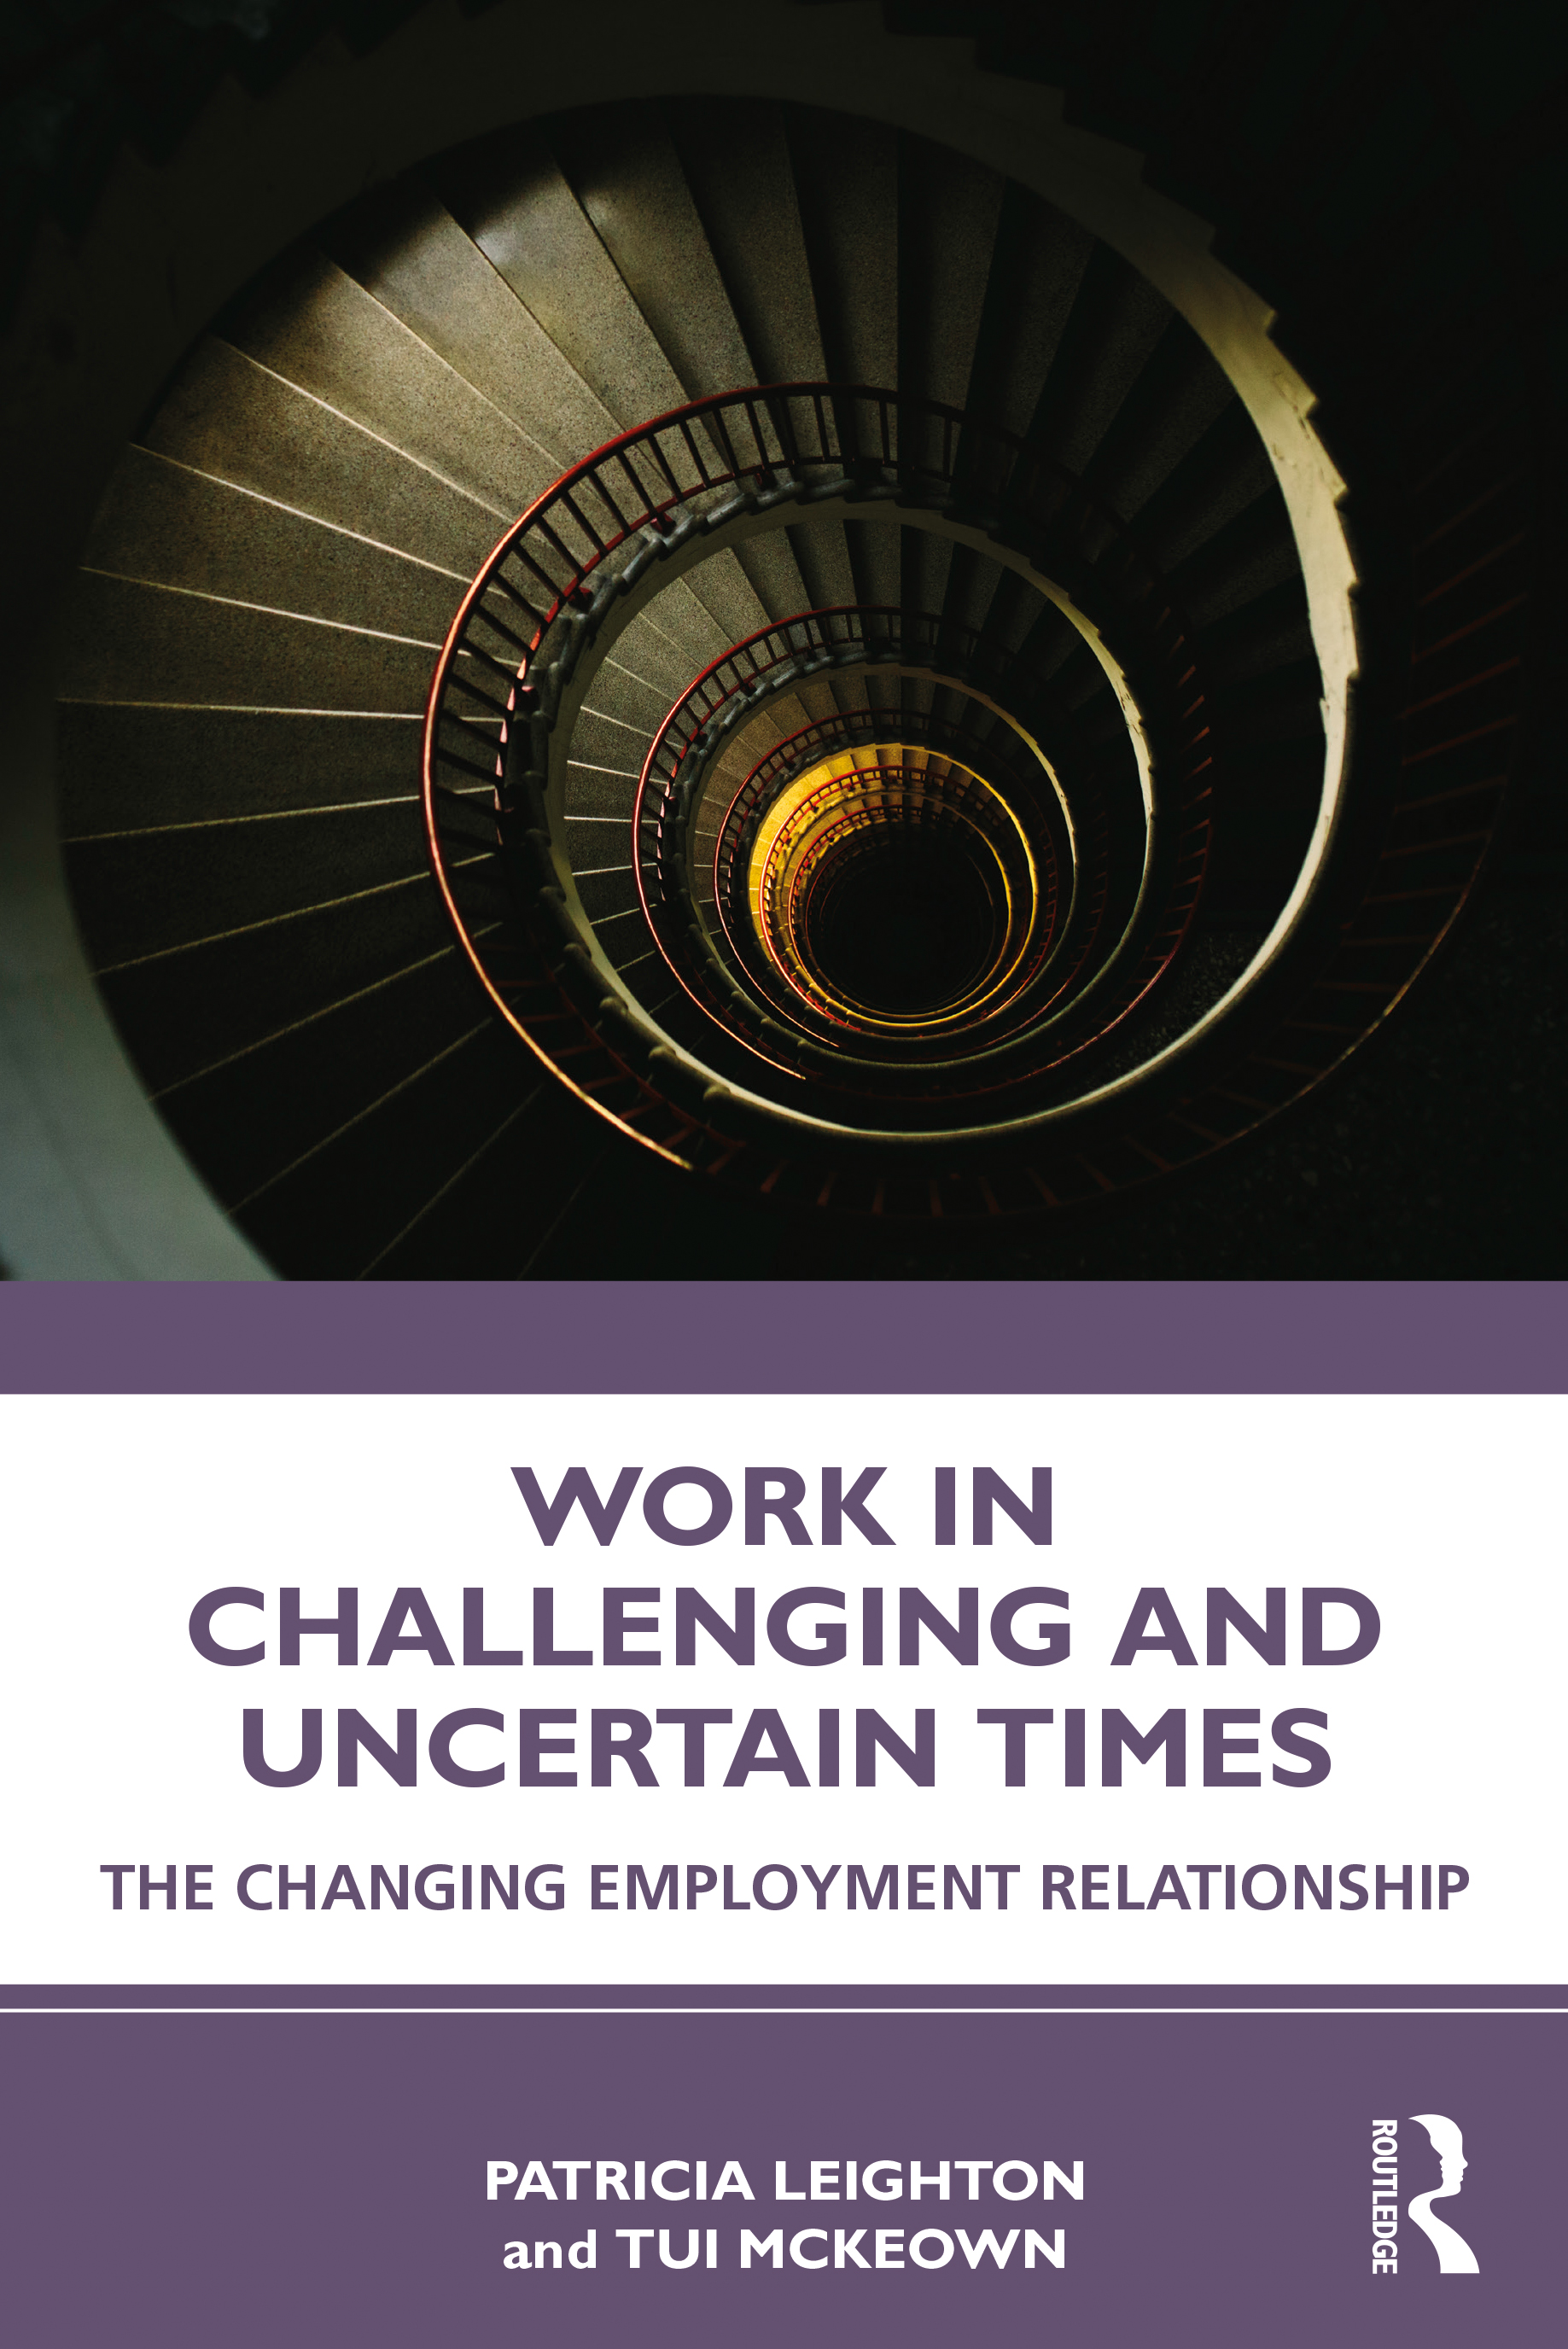 Work in Challenging and Uncertain Times